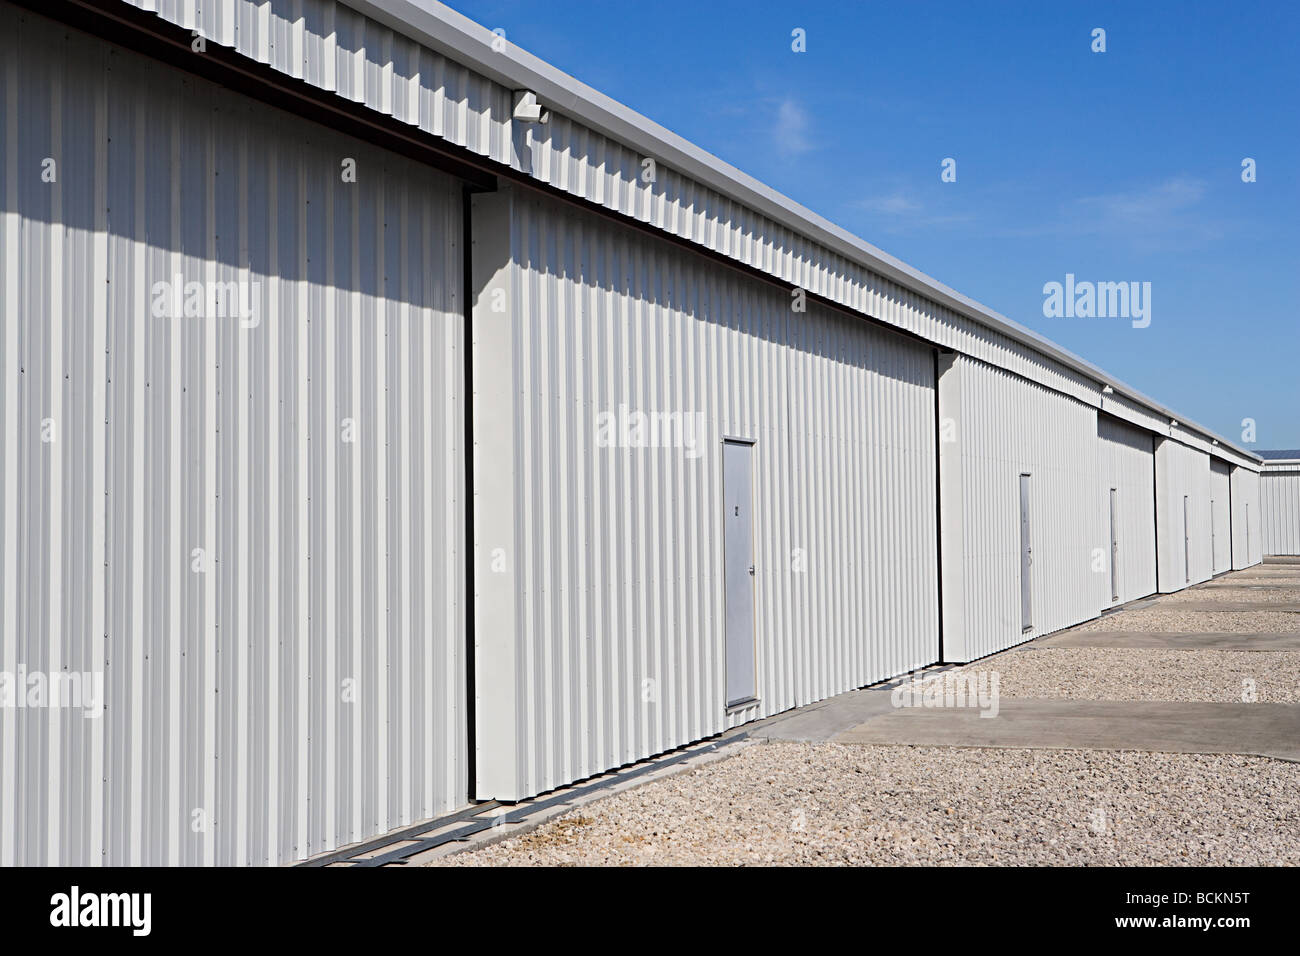 Warehouse buildings - Stock Image